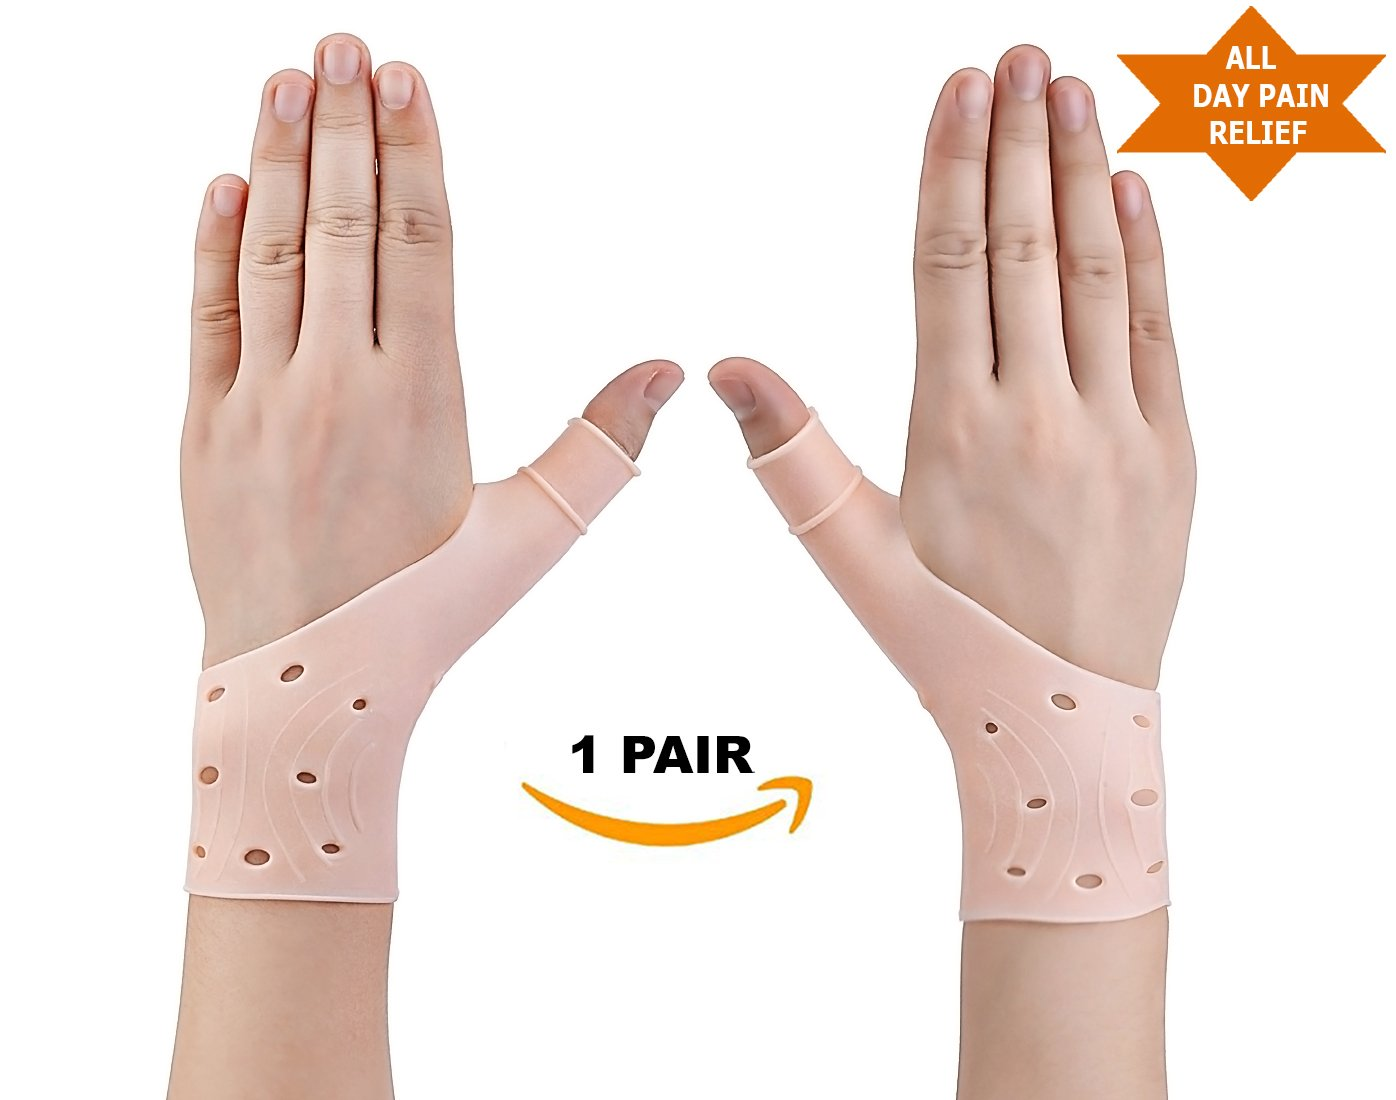 Zigora Gel Wrist Thumb Brace Support - Wrist & Thumb Stabilizer Gloves Braces, Fast Relief from Carpal Tunnel, Rheumatism, Tenosynovitis, Tendonitis & Typing Pain, (1 Pair) Breathable and Lightweight